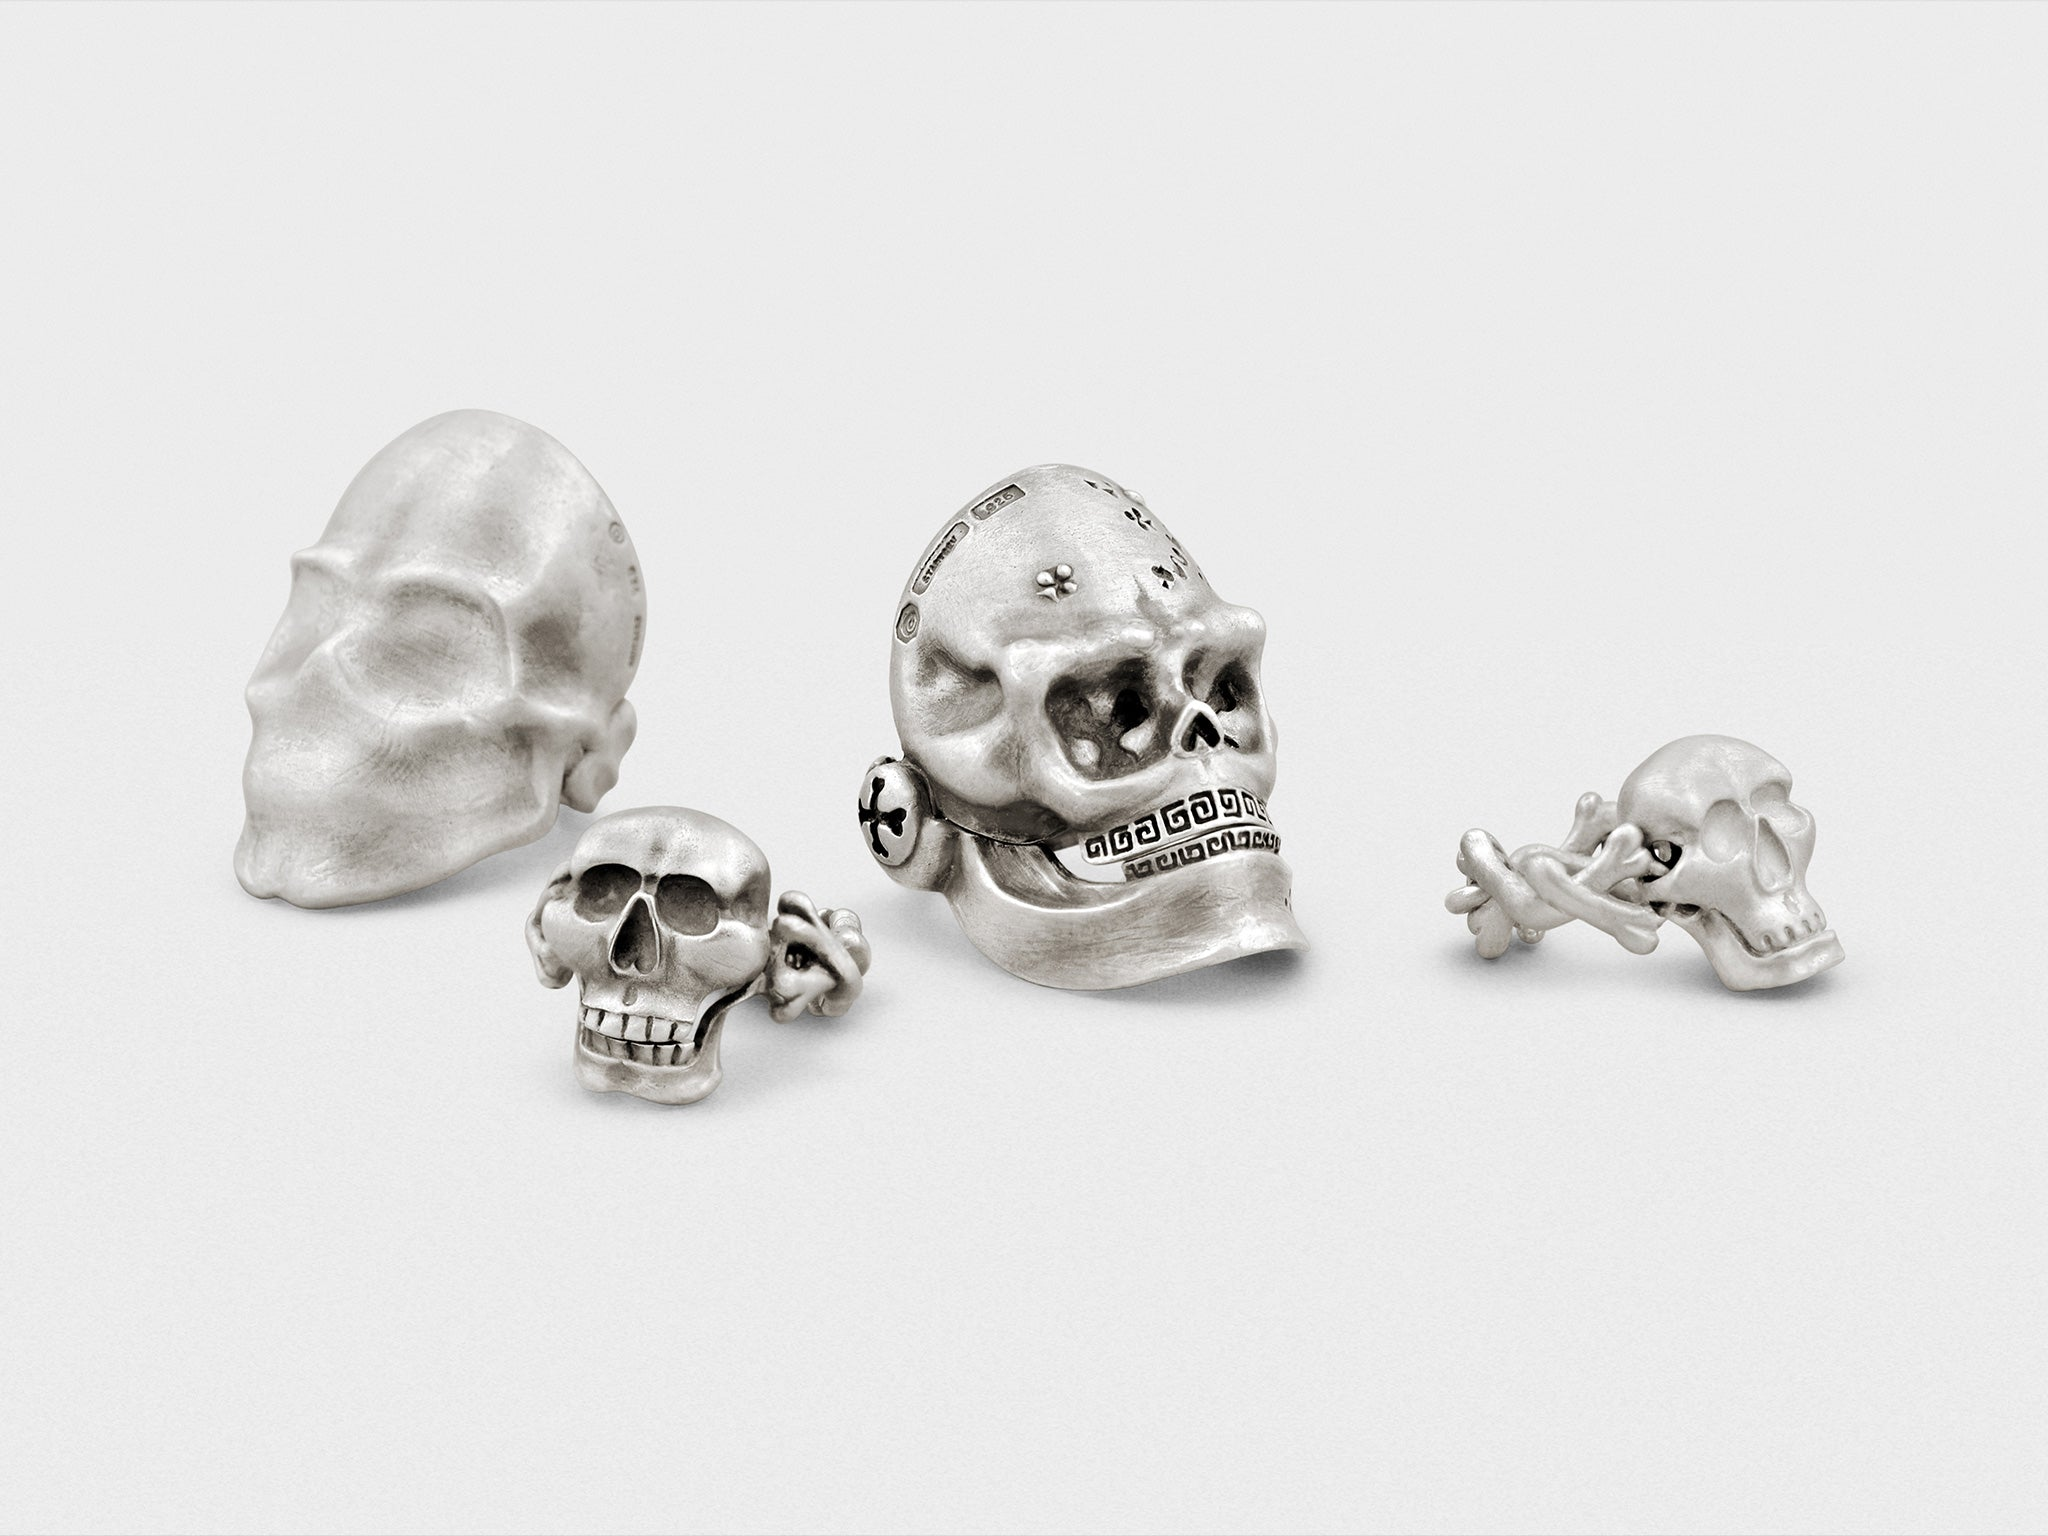 Handcrafted sterling silver skull rings by Snake Bones